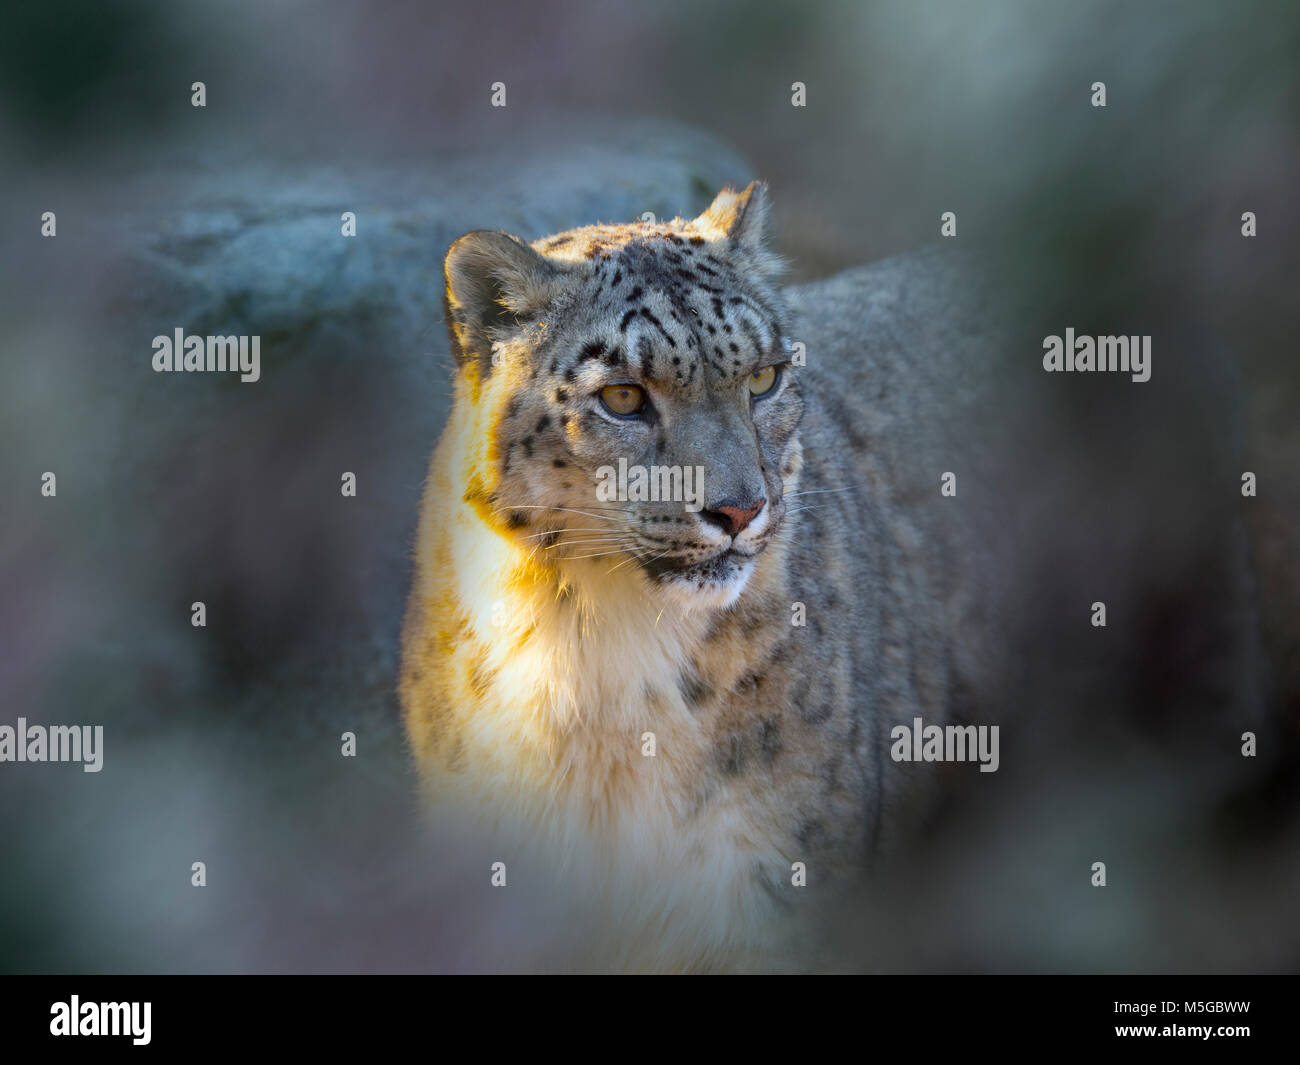 Snow leopard or ounce Panthera uncia in montain habitat - Stock Image